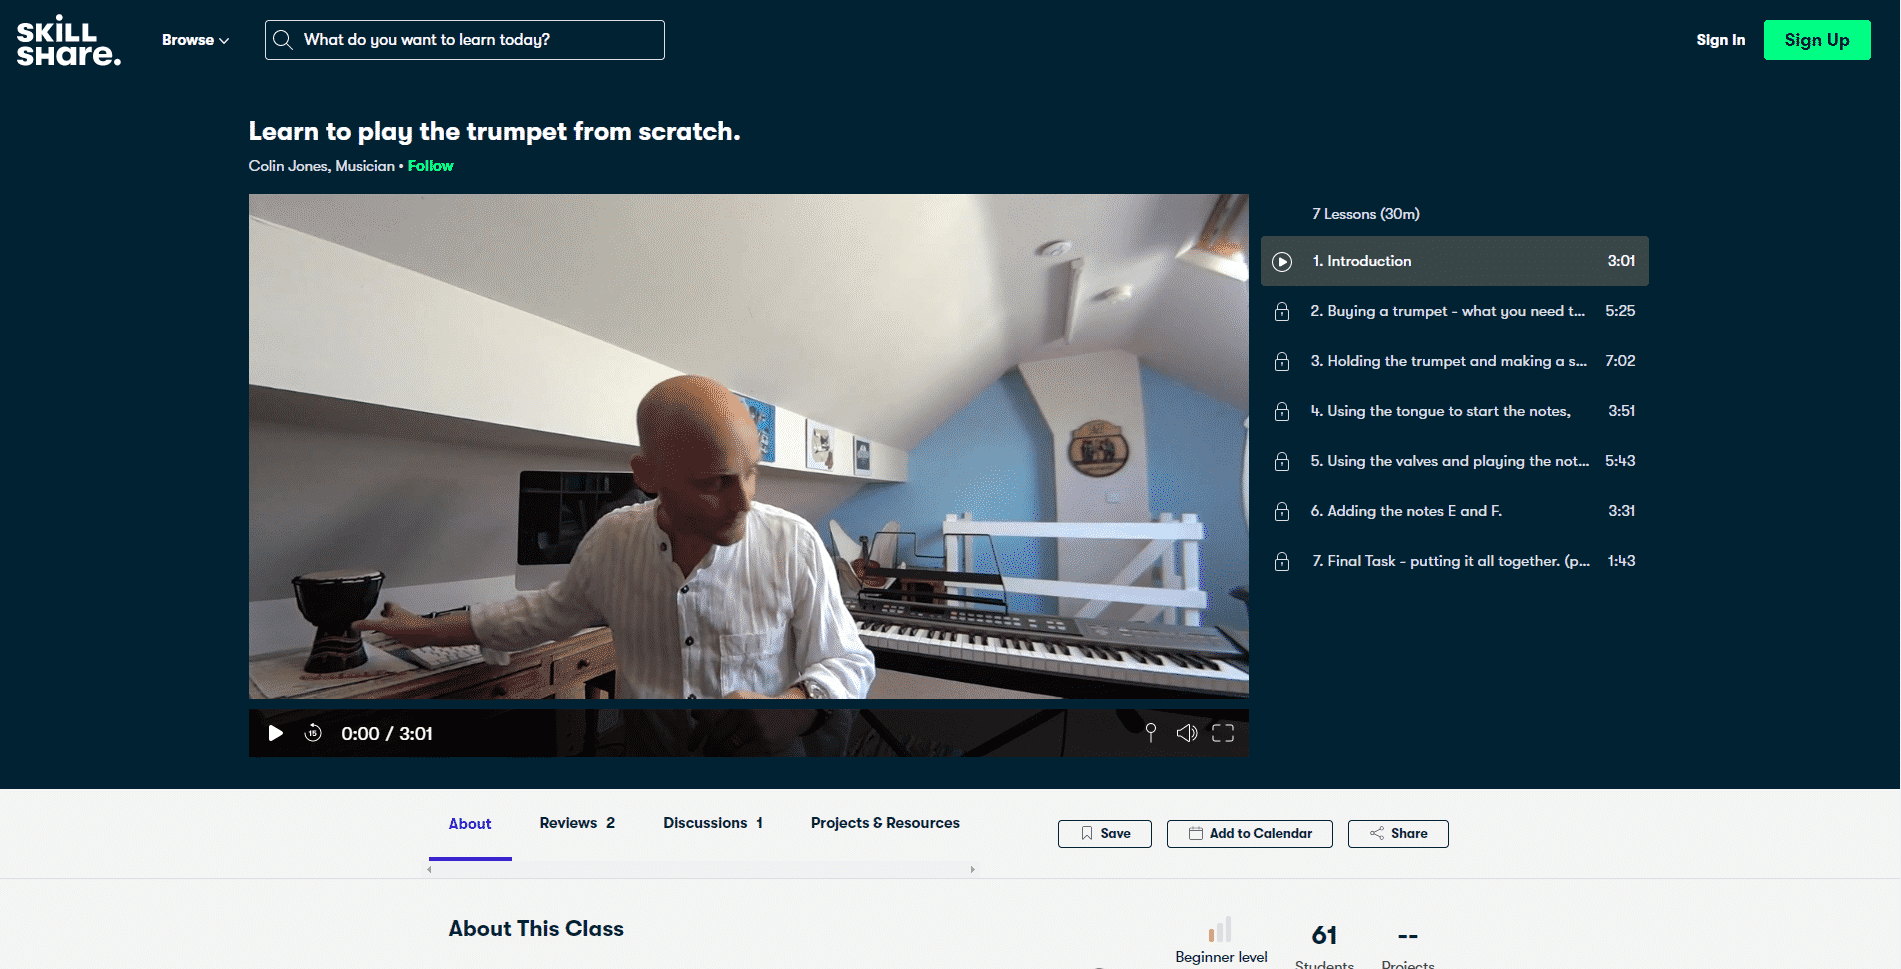 Skillshare Course 1 Trumpet Lessons Online